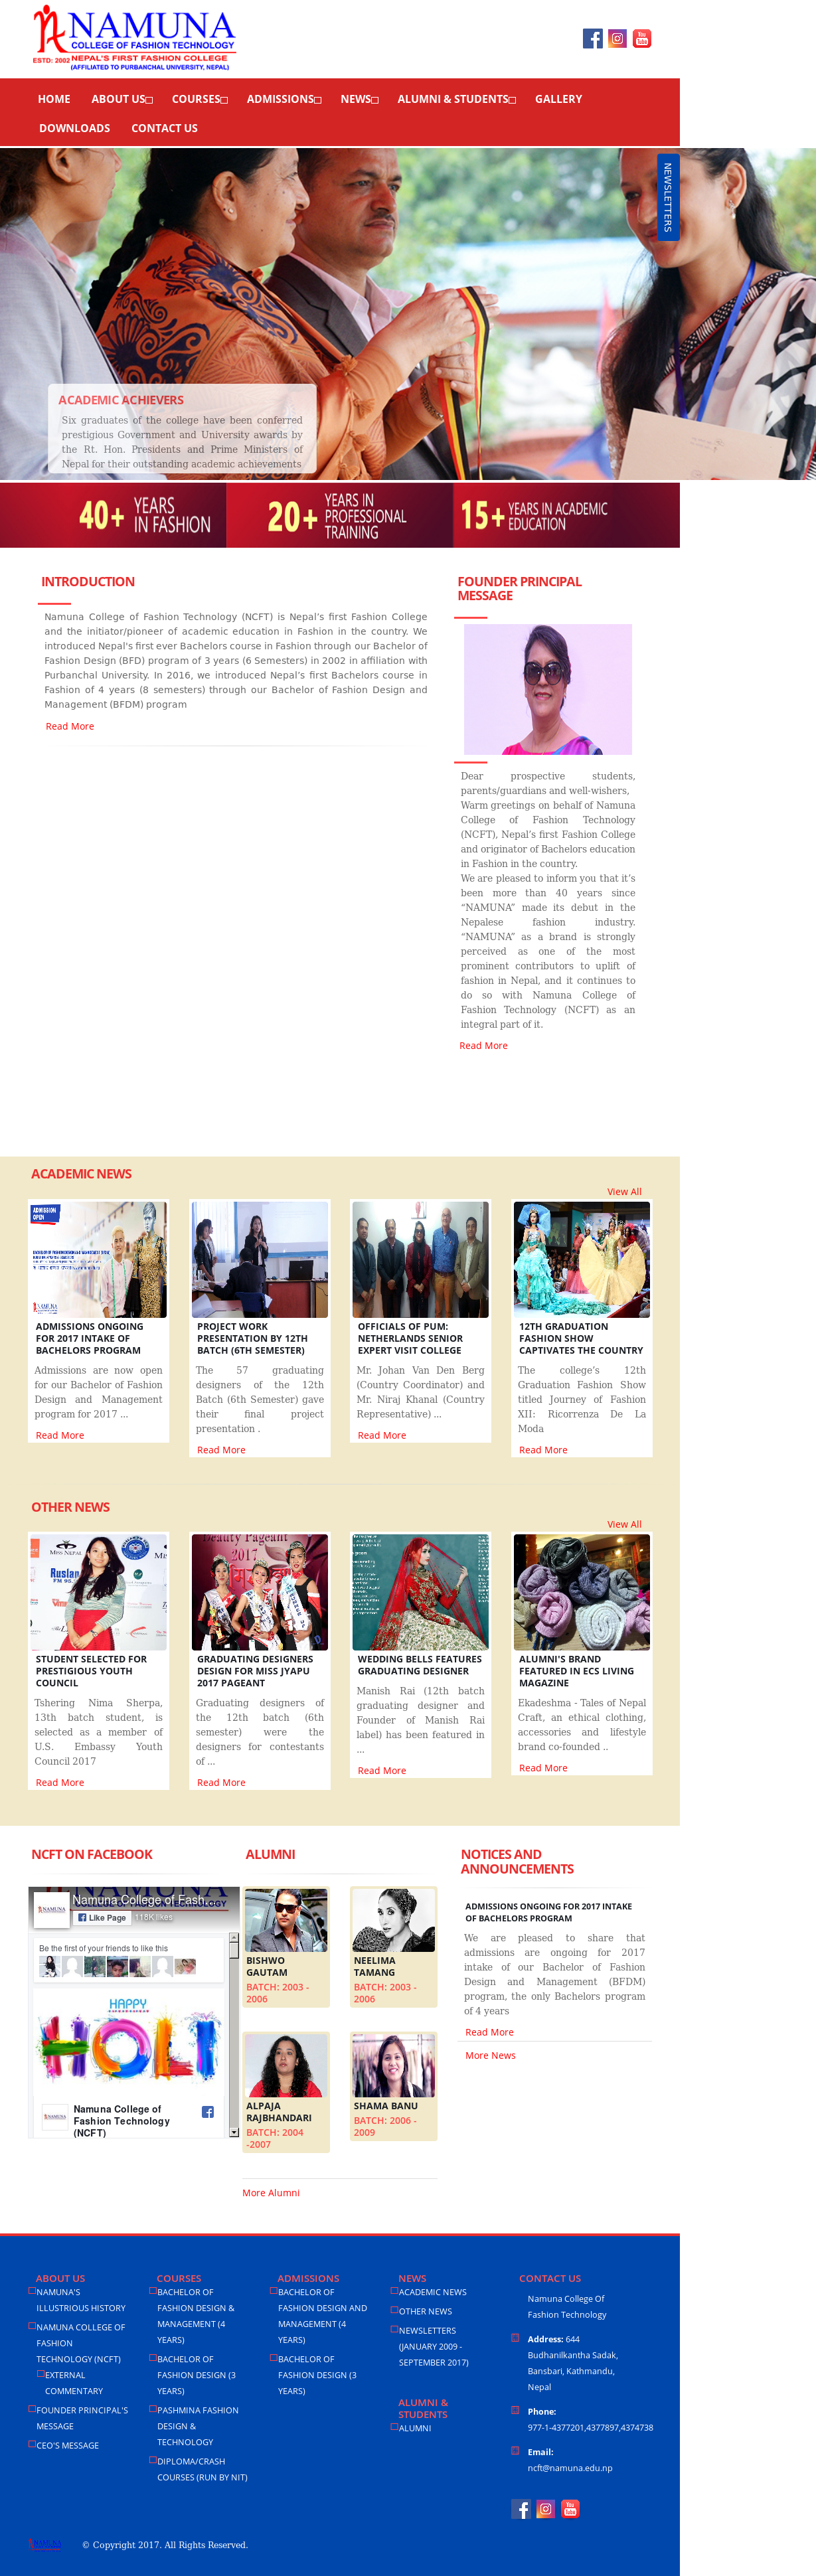 Namuna College Of Fashion Technology Competitors Revenue And Employees Owler Company Profile